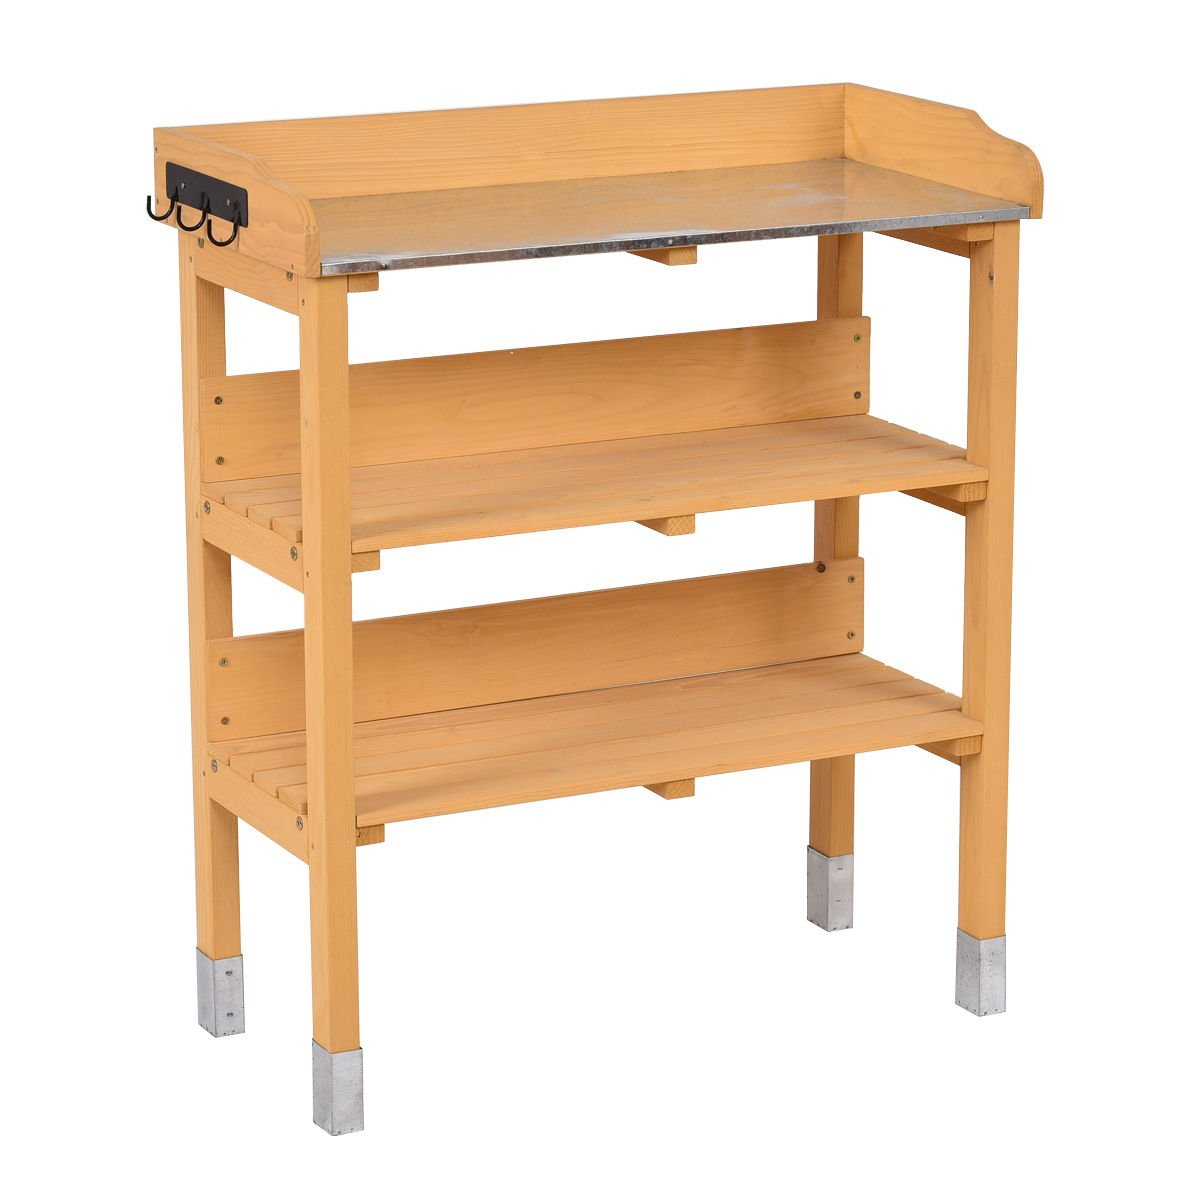 billionese Wooden Potting Bench Garden Planting Workstation Shelves With 3 Tier 3 Hooks by billionese